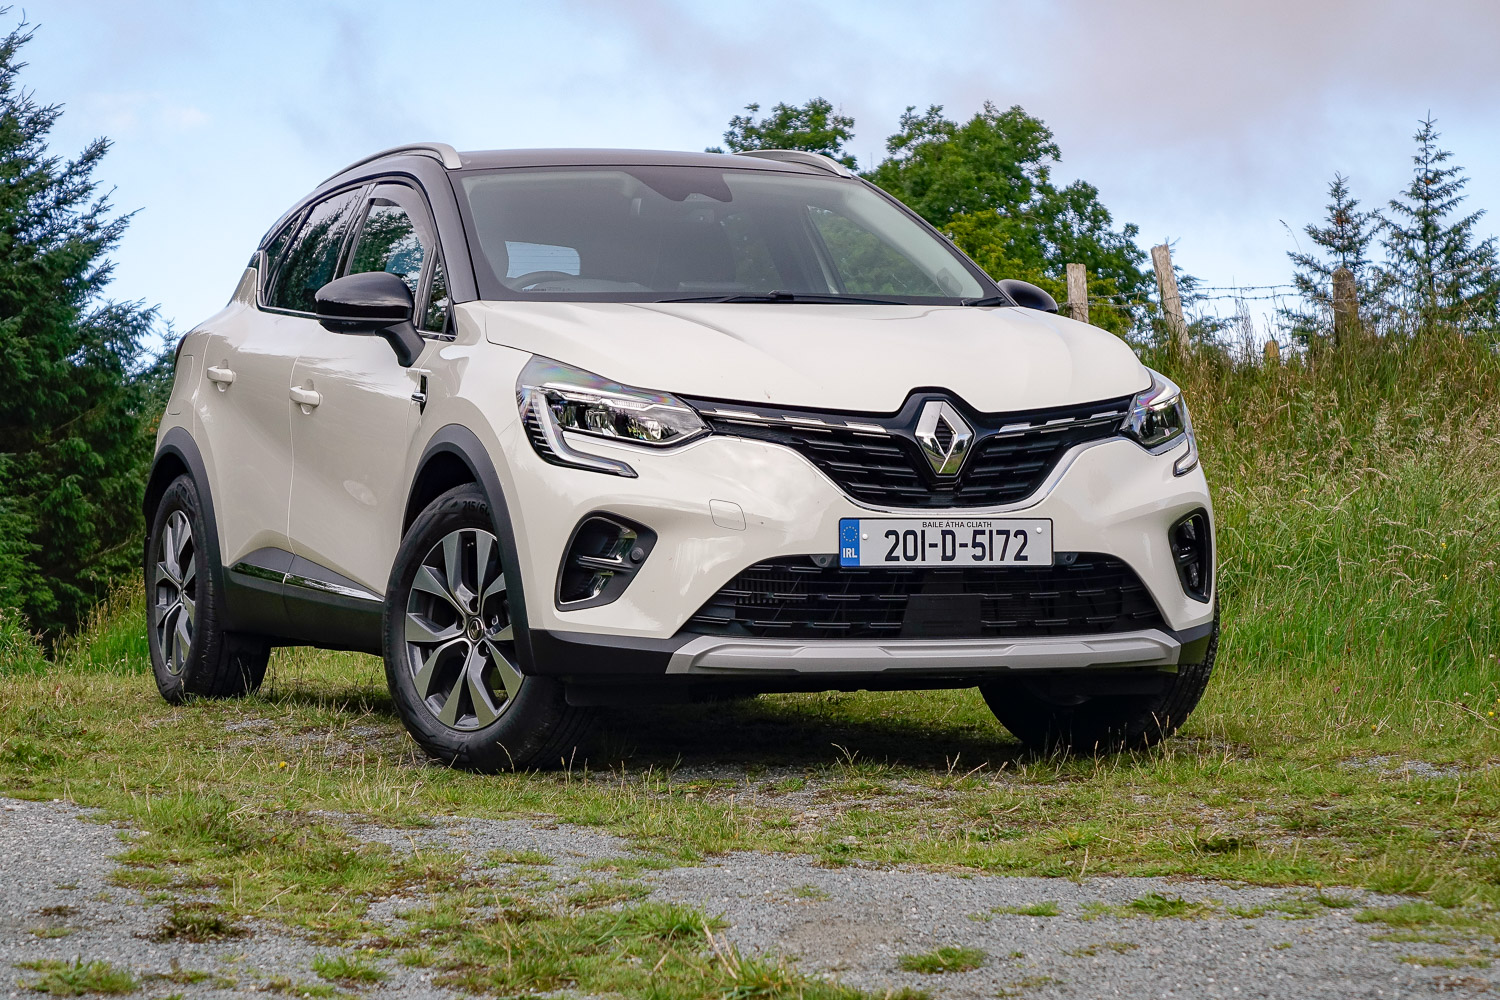 Car Reviews | Renault Captur 1.0 TCe 100 (2020) | CompleteCar.ie